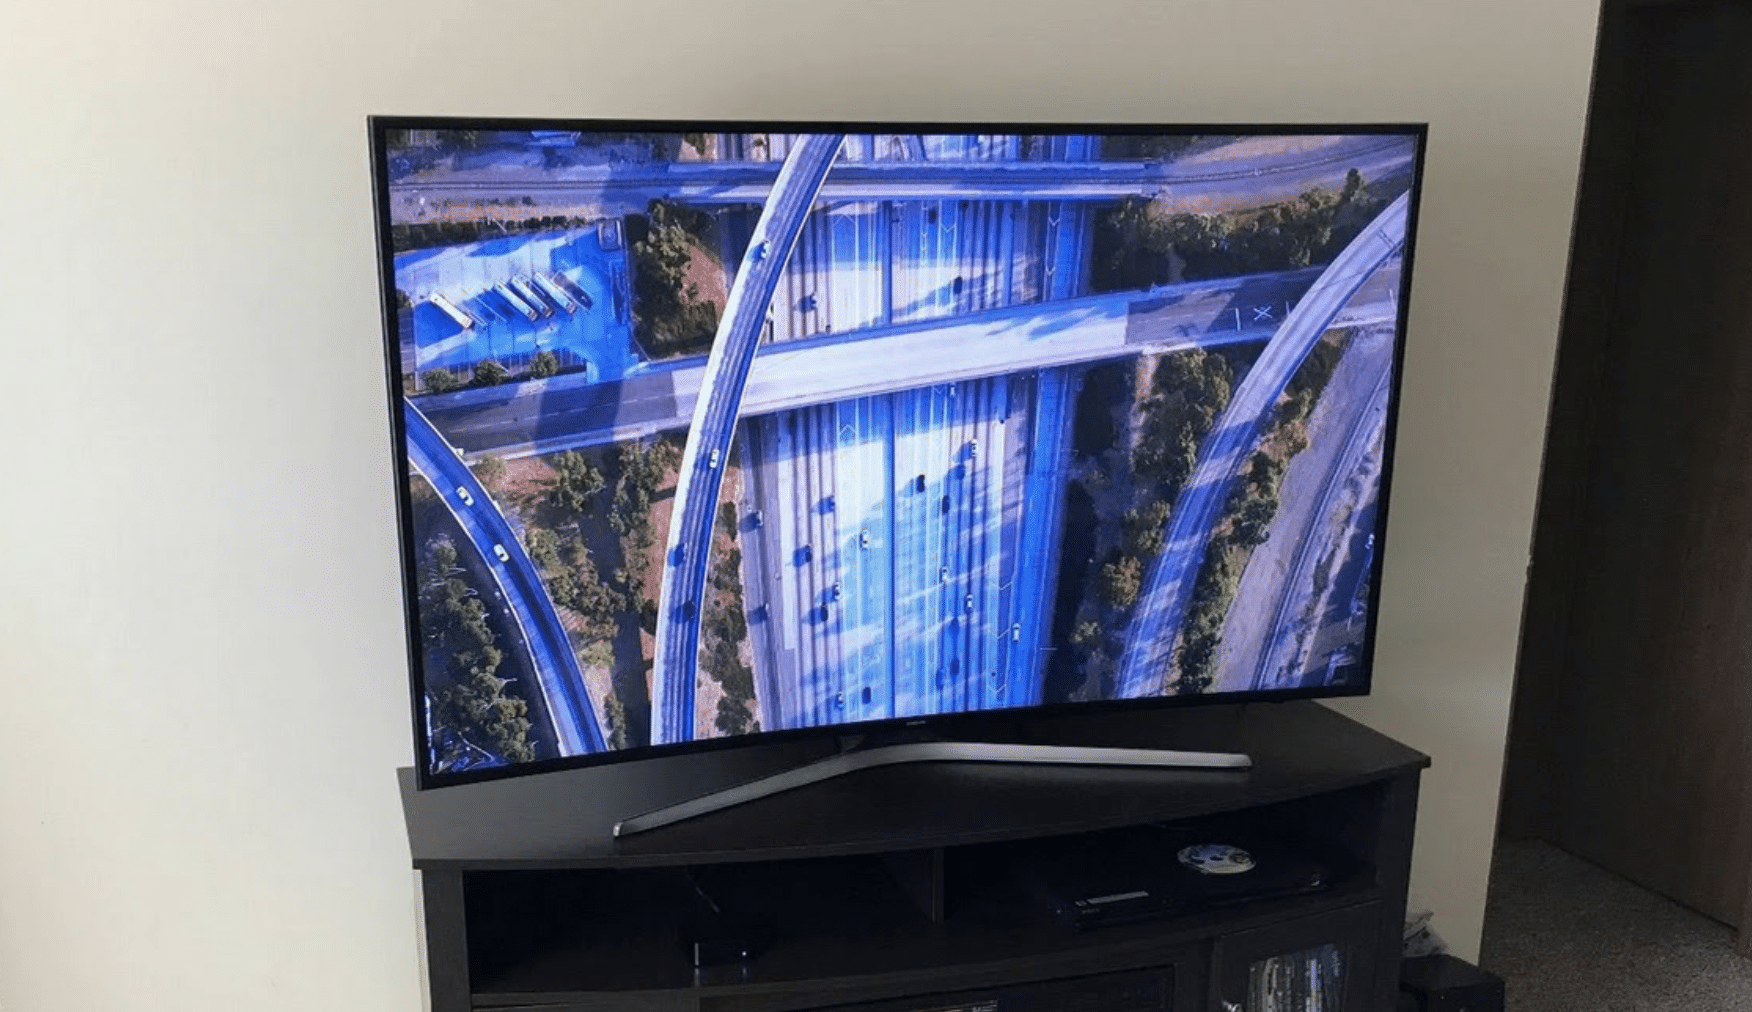 Samsung UN65MU6500 Review - The Best Deal 4k Curved TV Out There